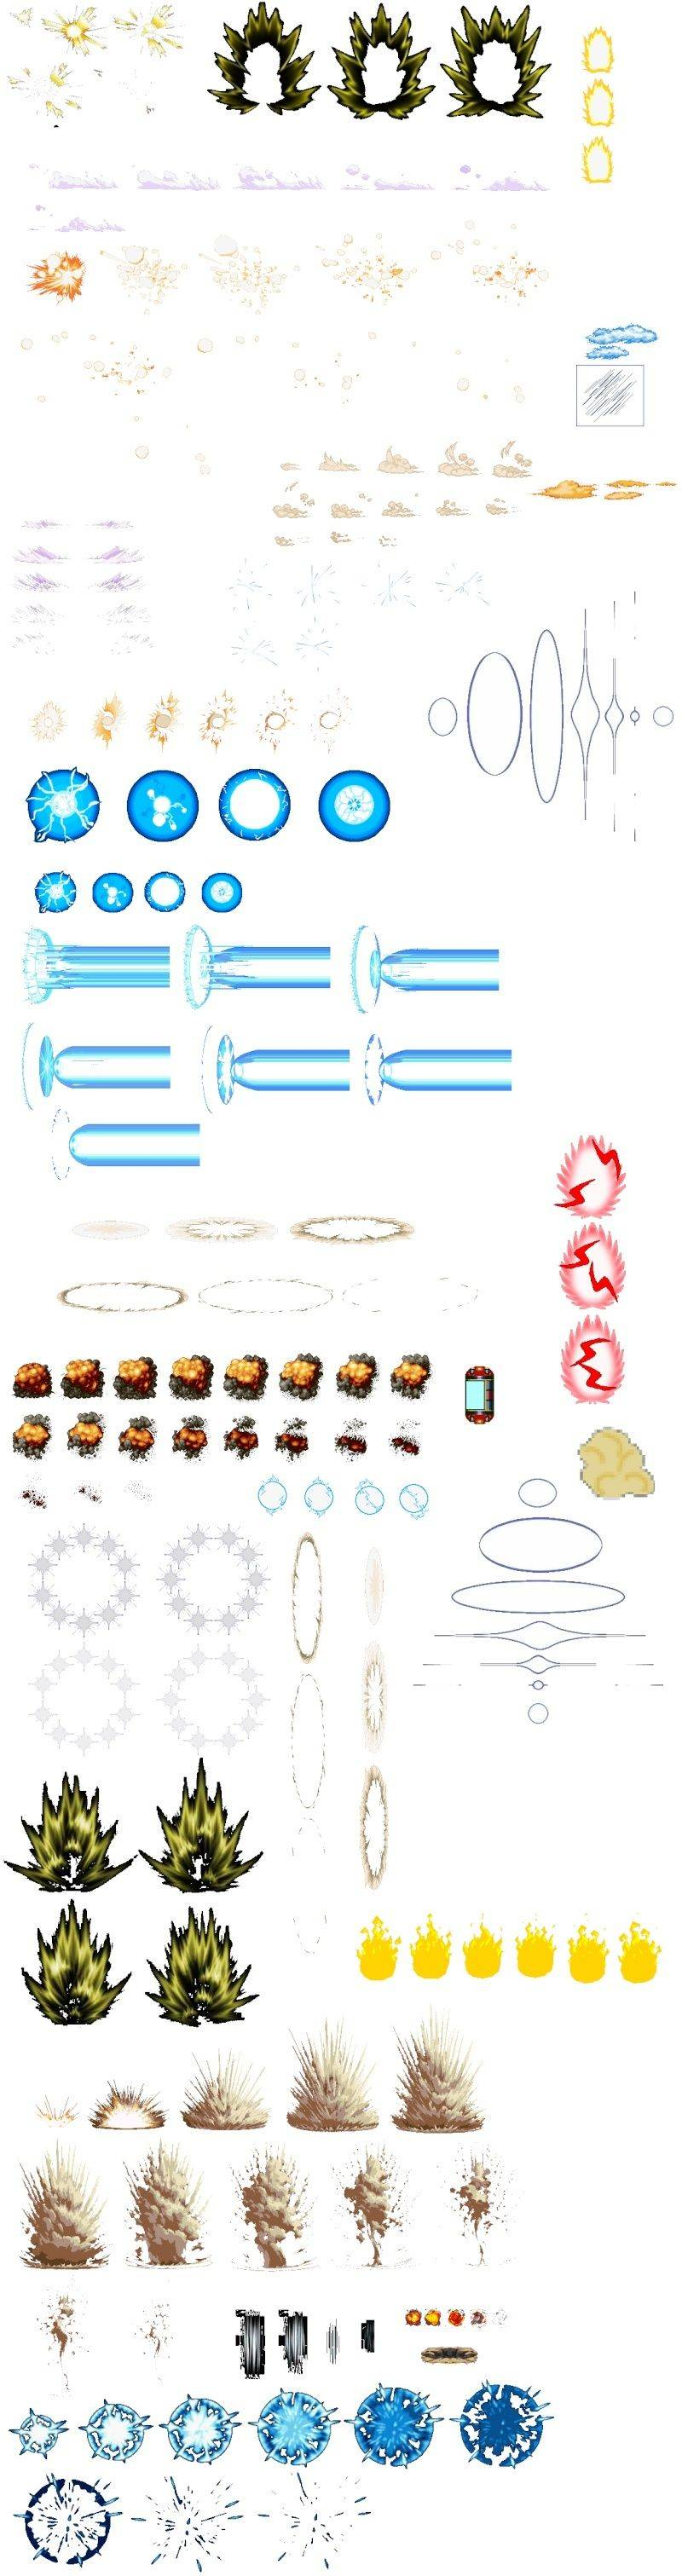 [solved]Effects sheet. Effect11